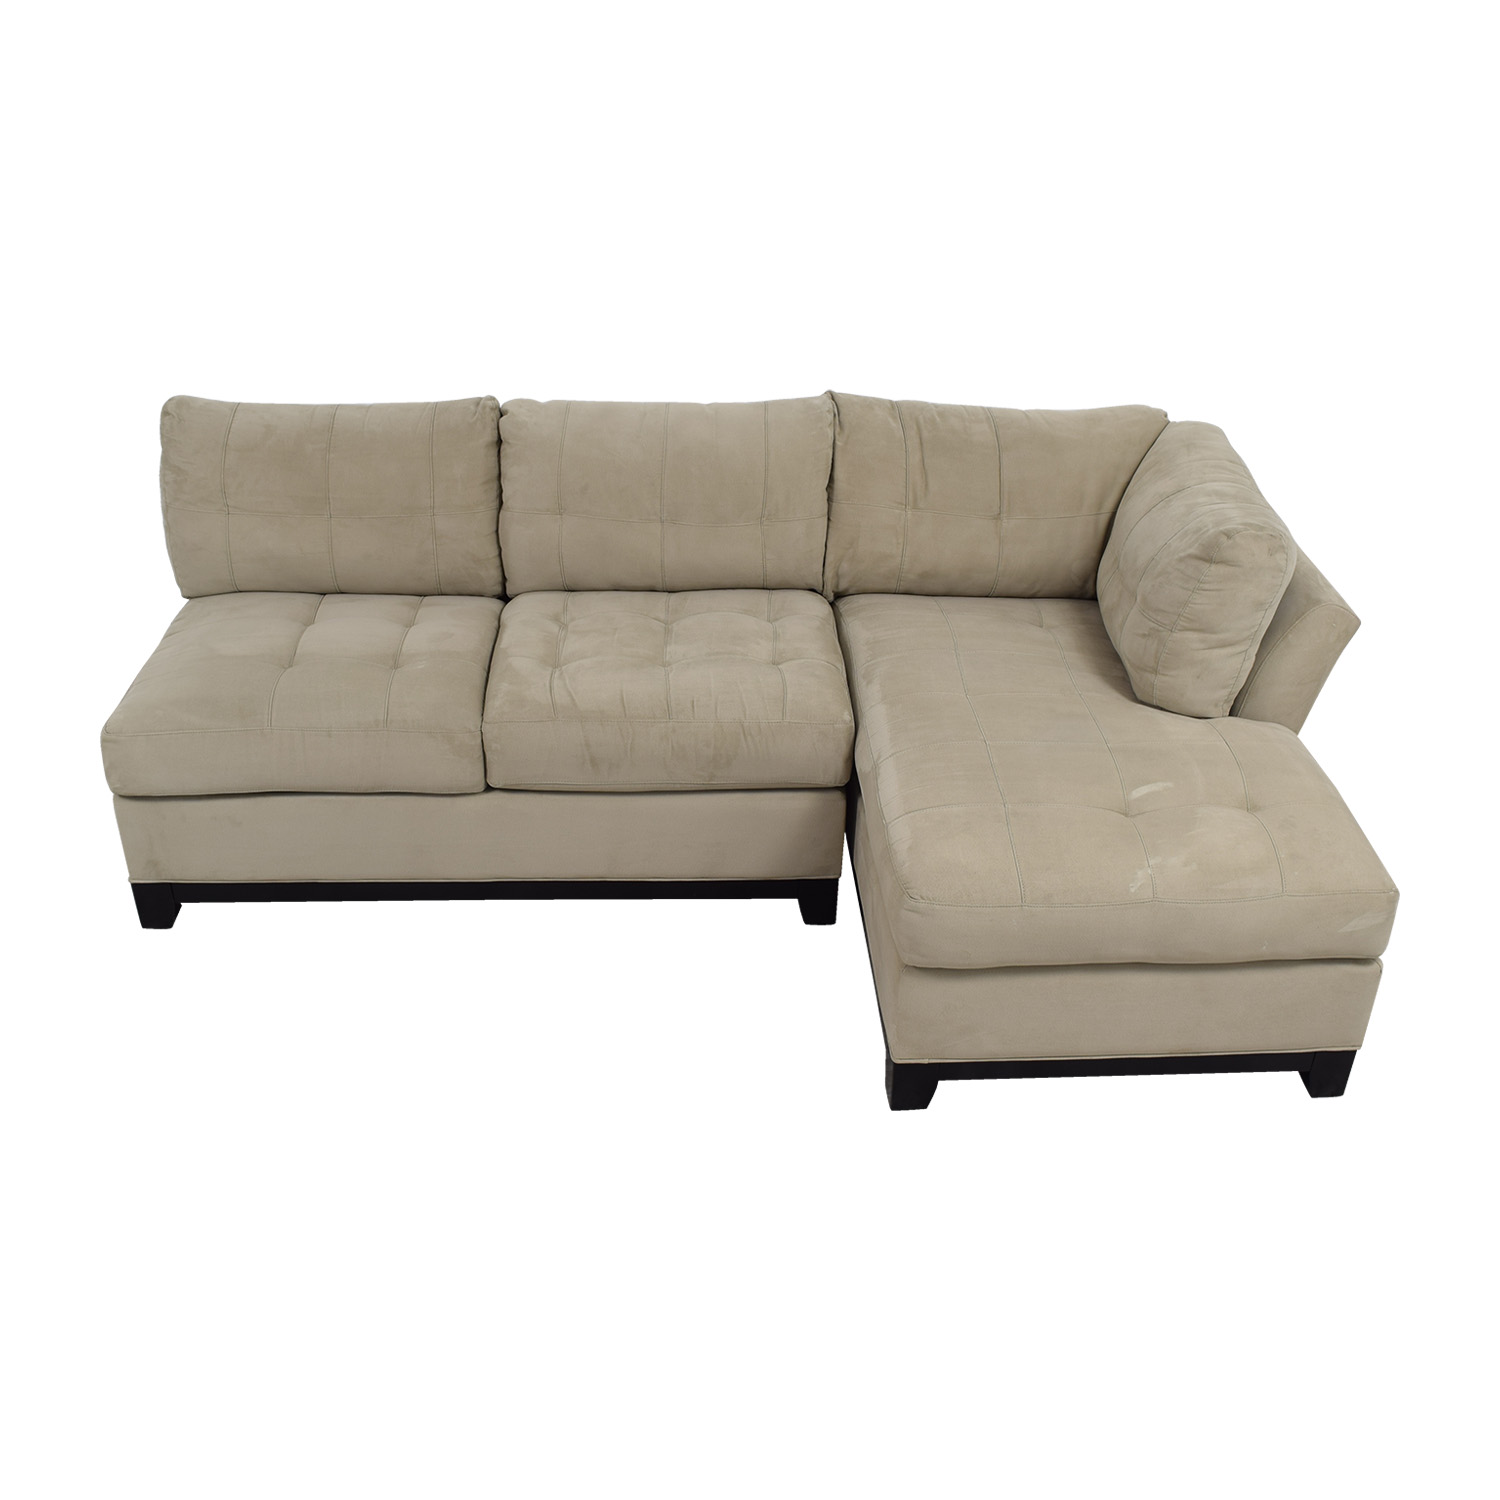 Raymour & Flanigan Raymour & Flanigan Cindy Crawford Home Gray Microfiber Sectional Sectionals